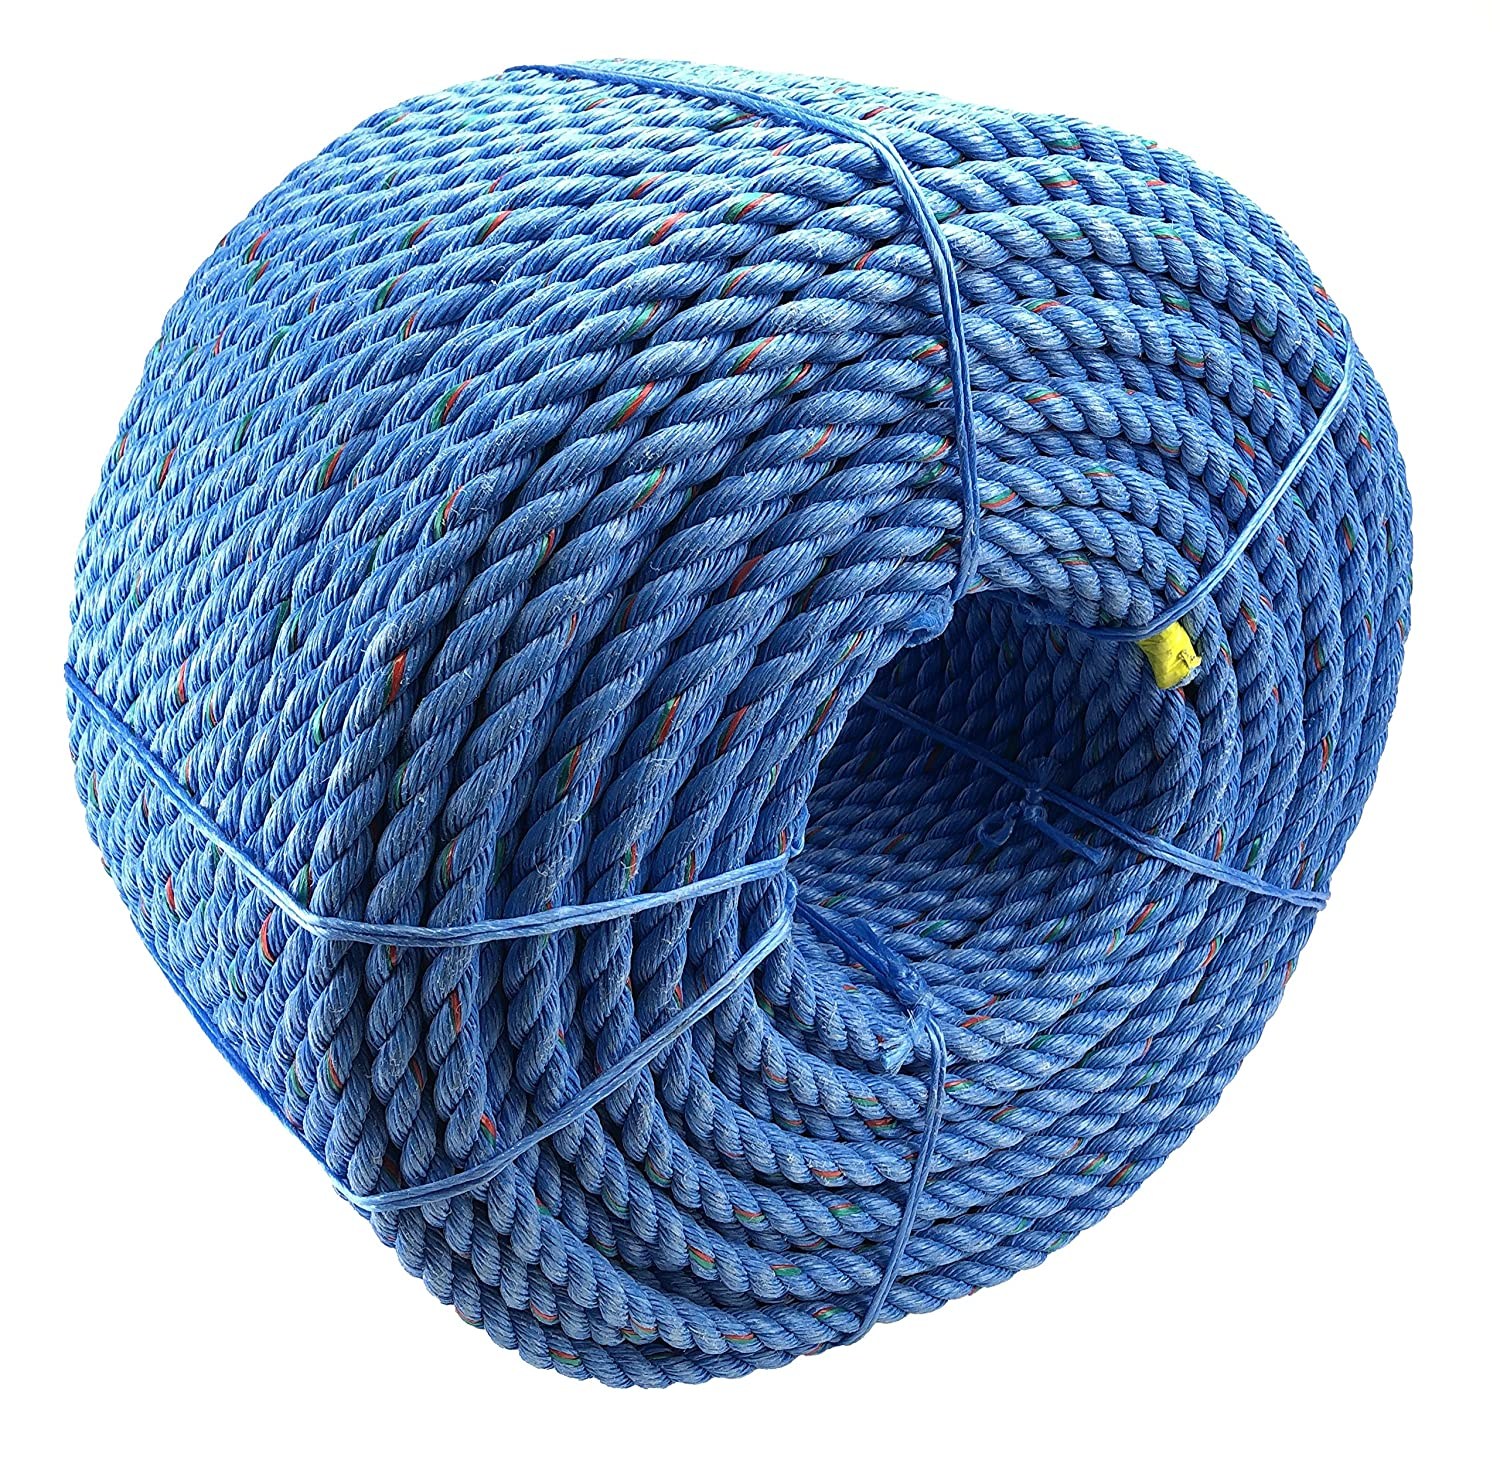 Tree Surgery Rope Fishing Pots Rigging 18mm Polysteel Rope x 220 Metre Coil